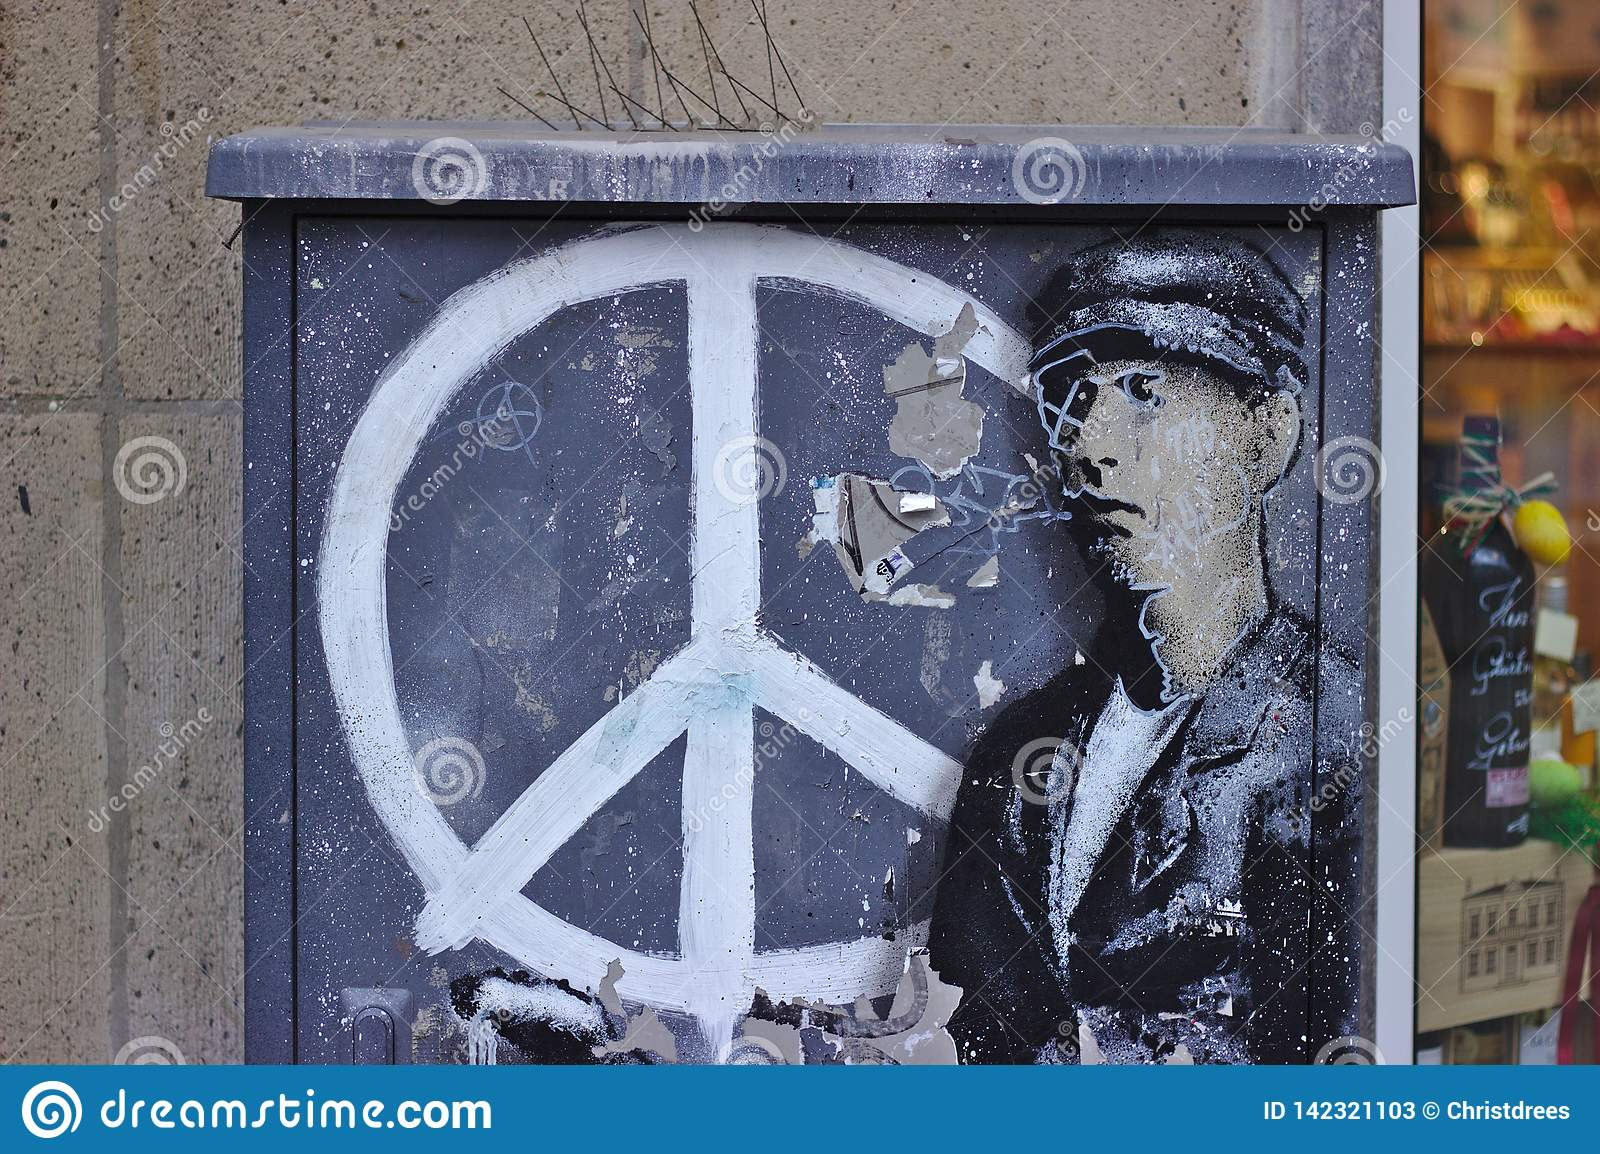 Graffiti with peace sign